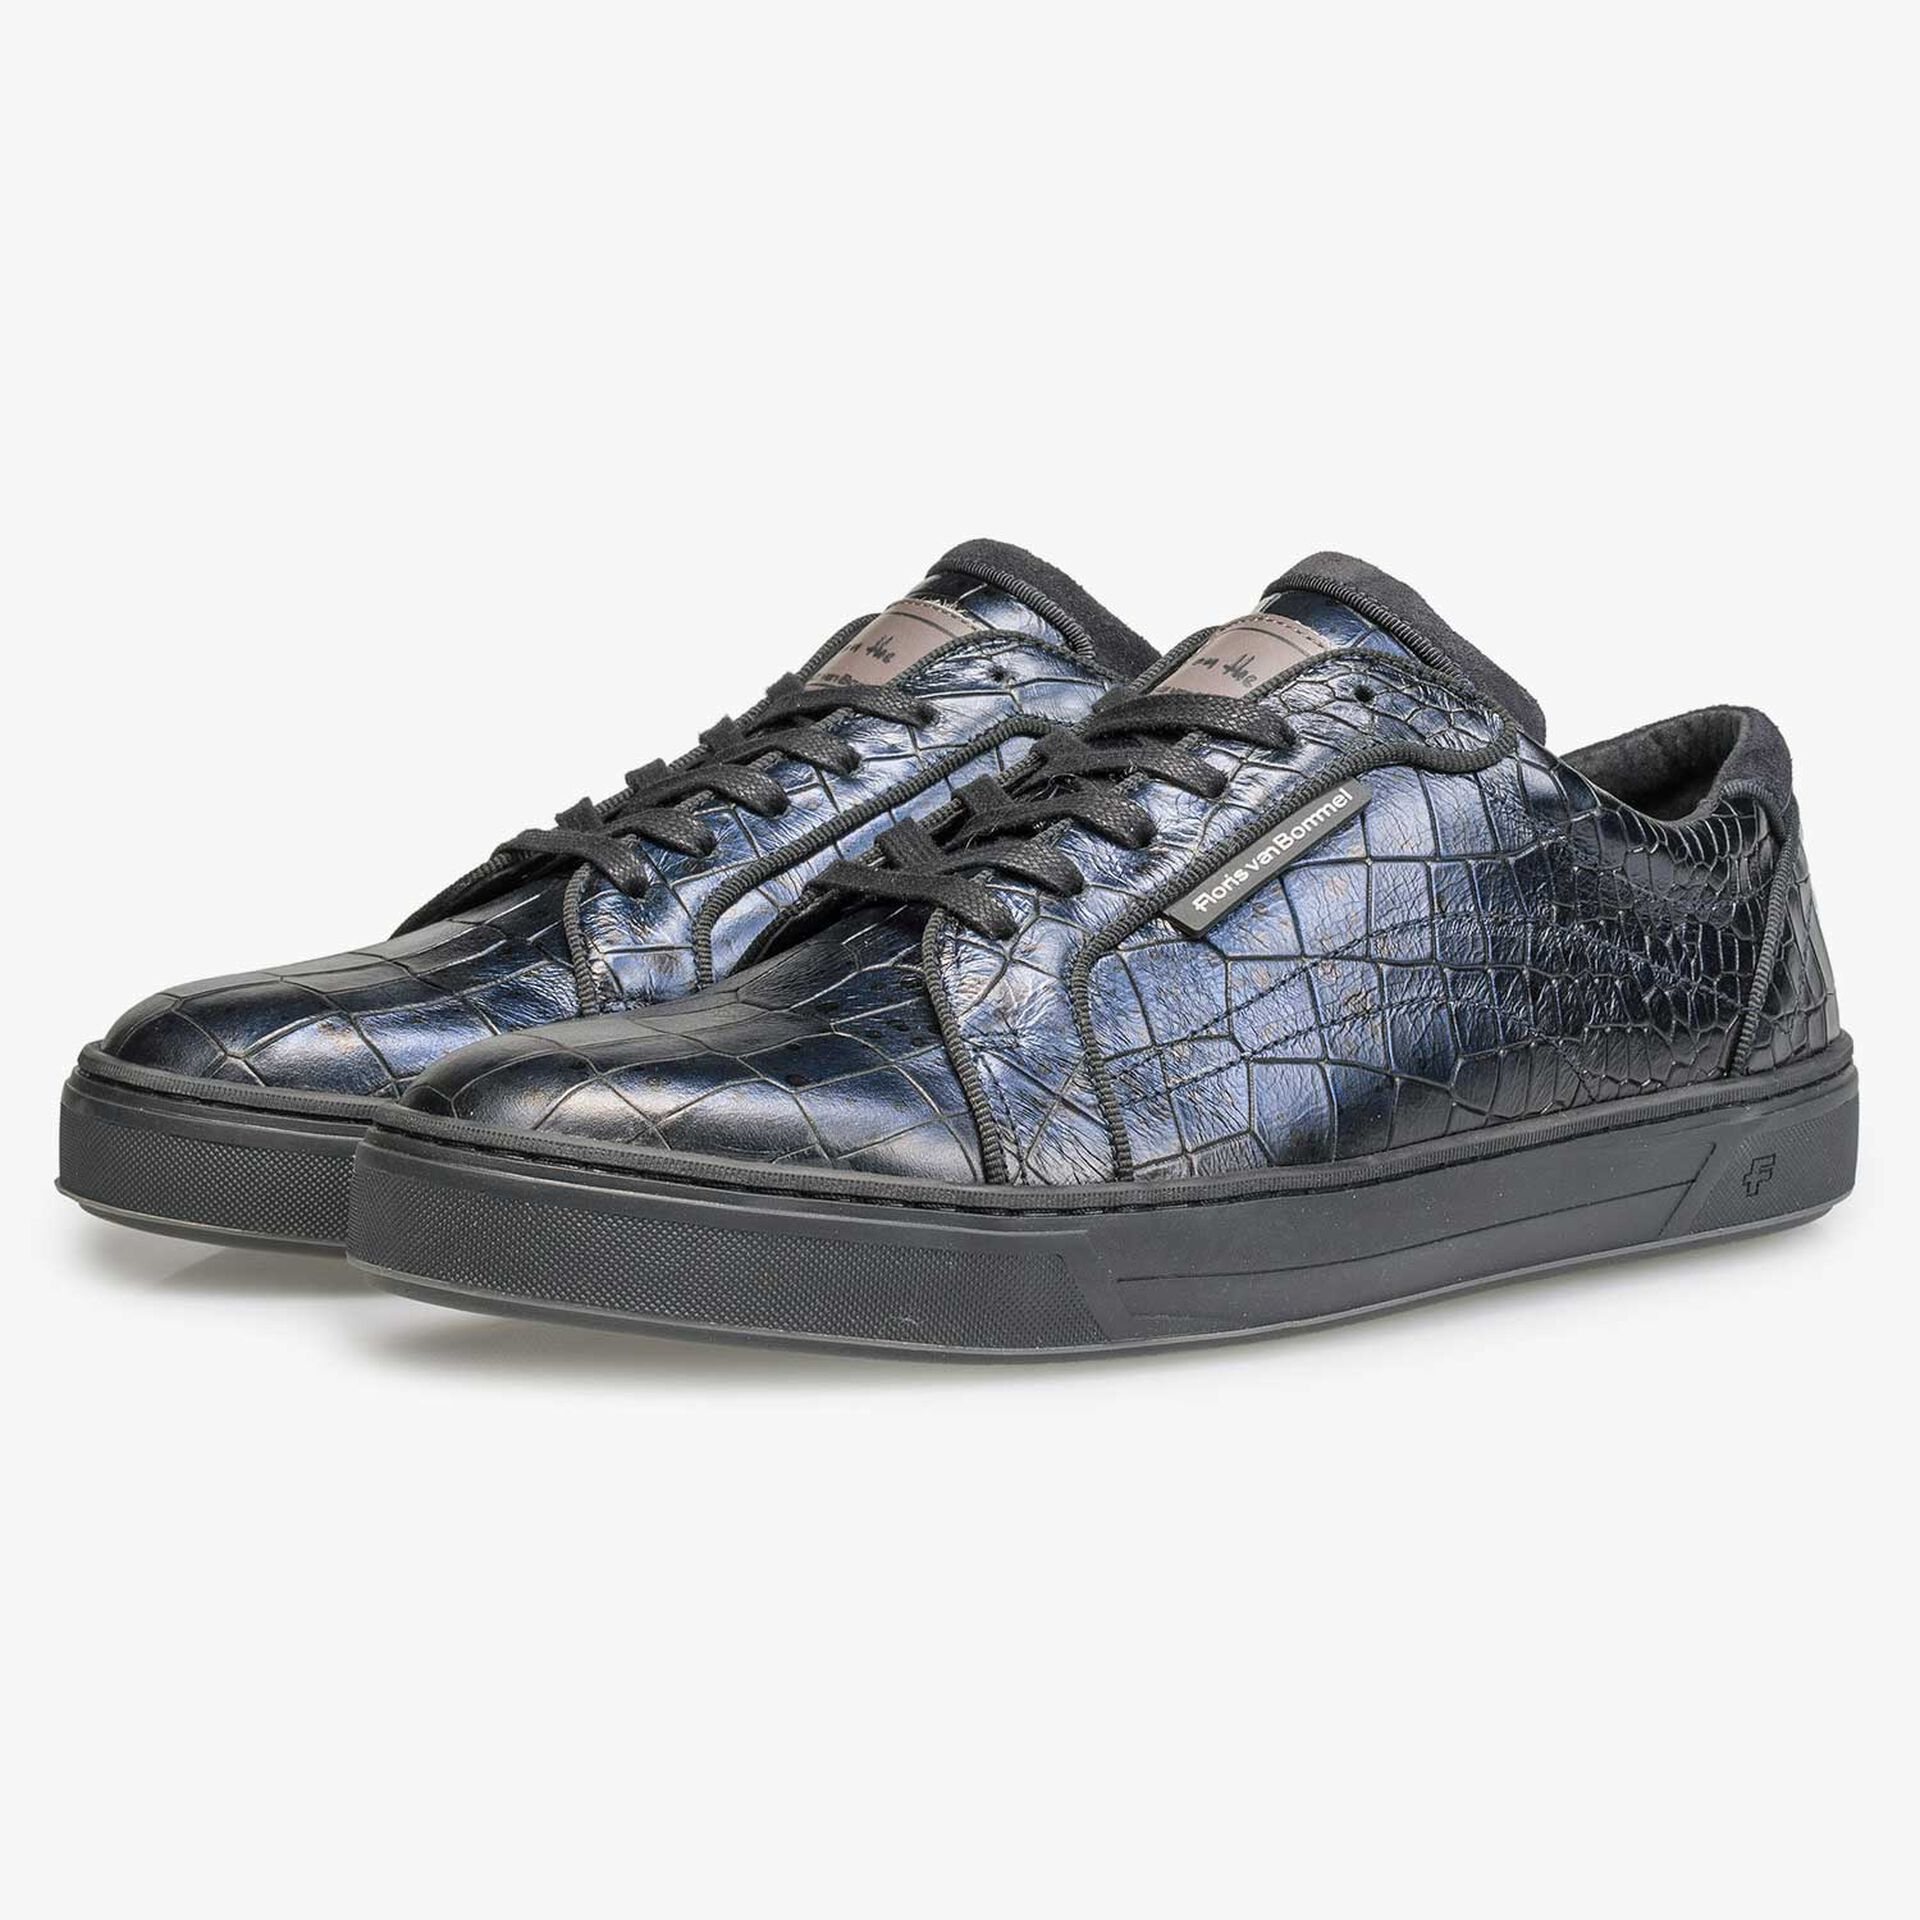 Blue leather sneaker with croco print